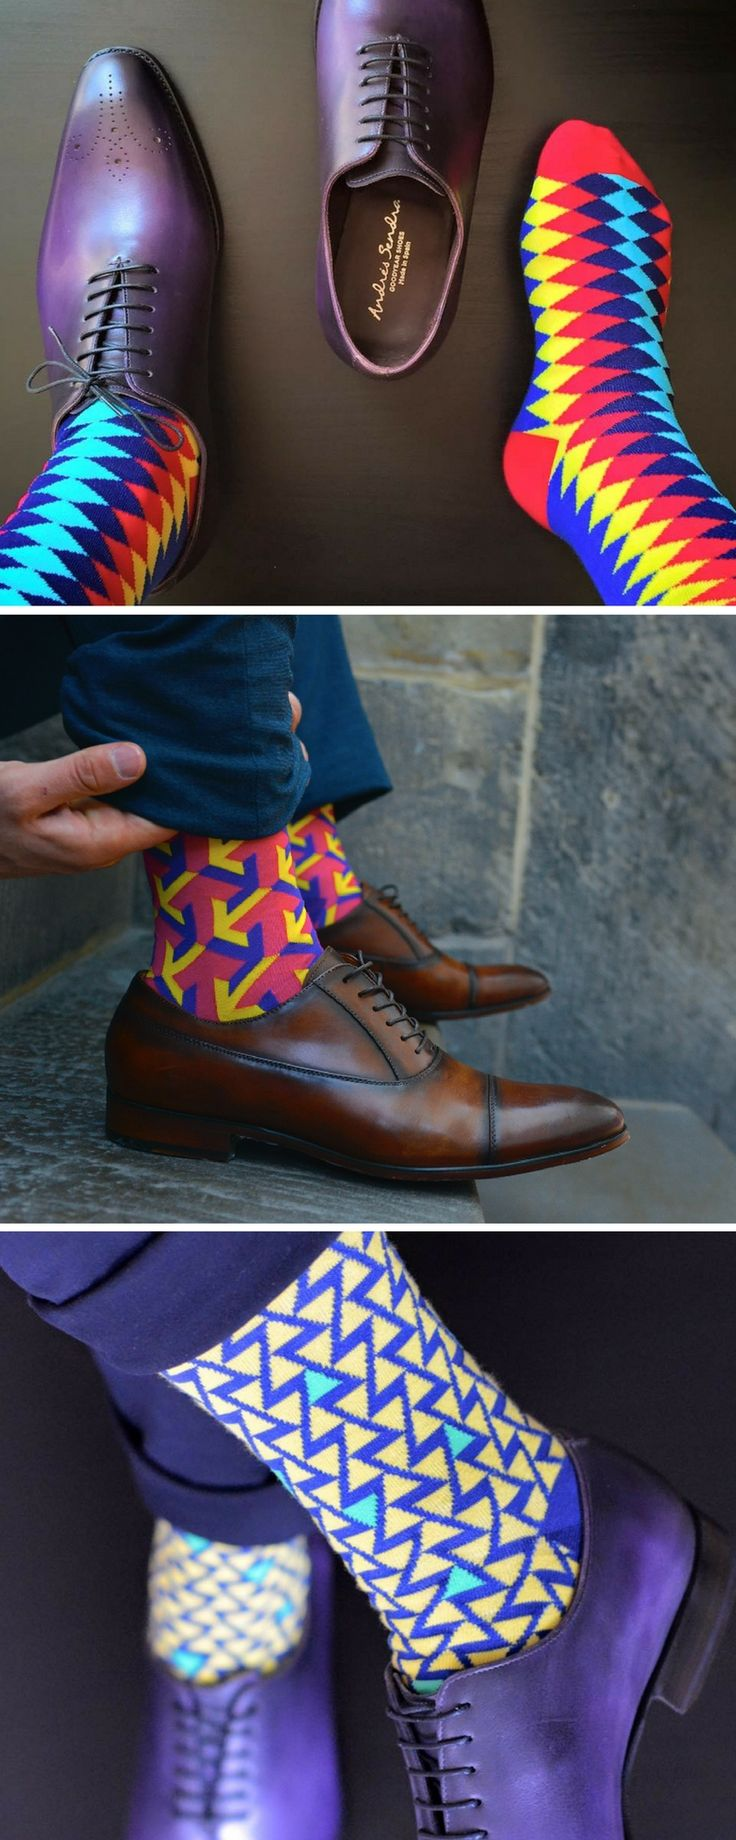 Sock game compliments guaranteed. Soxy.com designs the coolest, most fun dress socks. . . . . . der Blog für den Gentleman - www.thegentlemanclub.de/blog